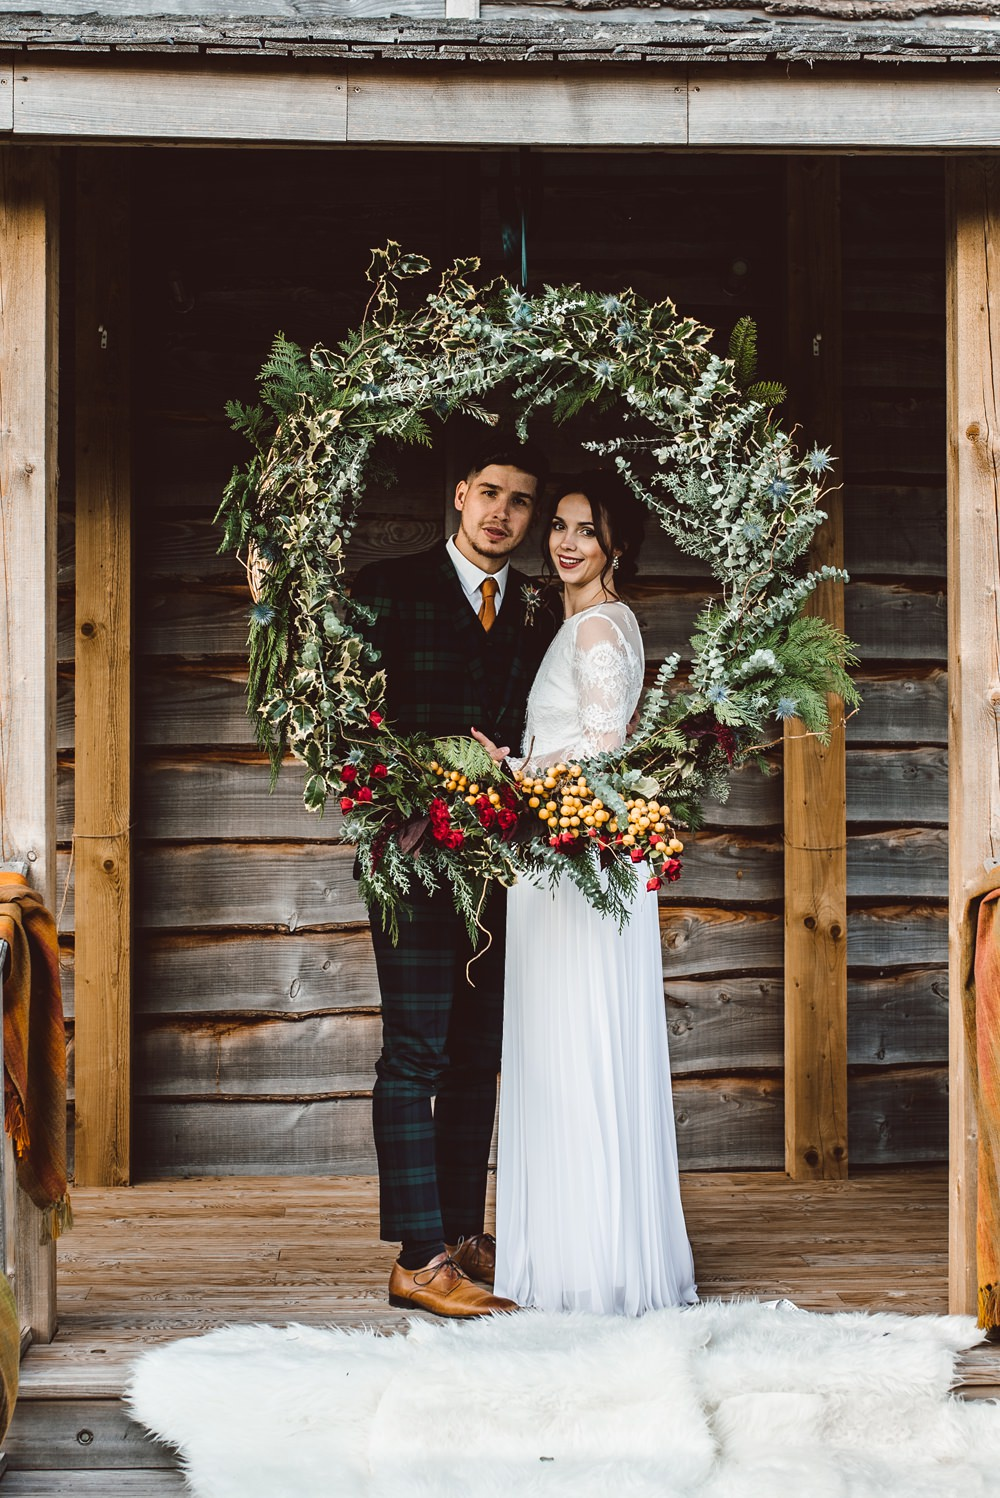 Large Wreath Photo Booth Backdrop Festive Rustic Christmas Wedding Ideas Dhw Photography